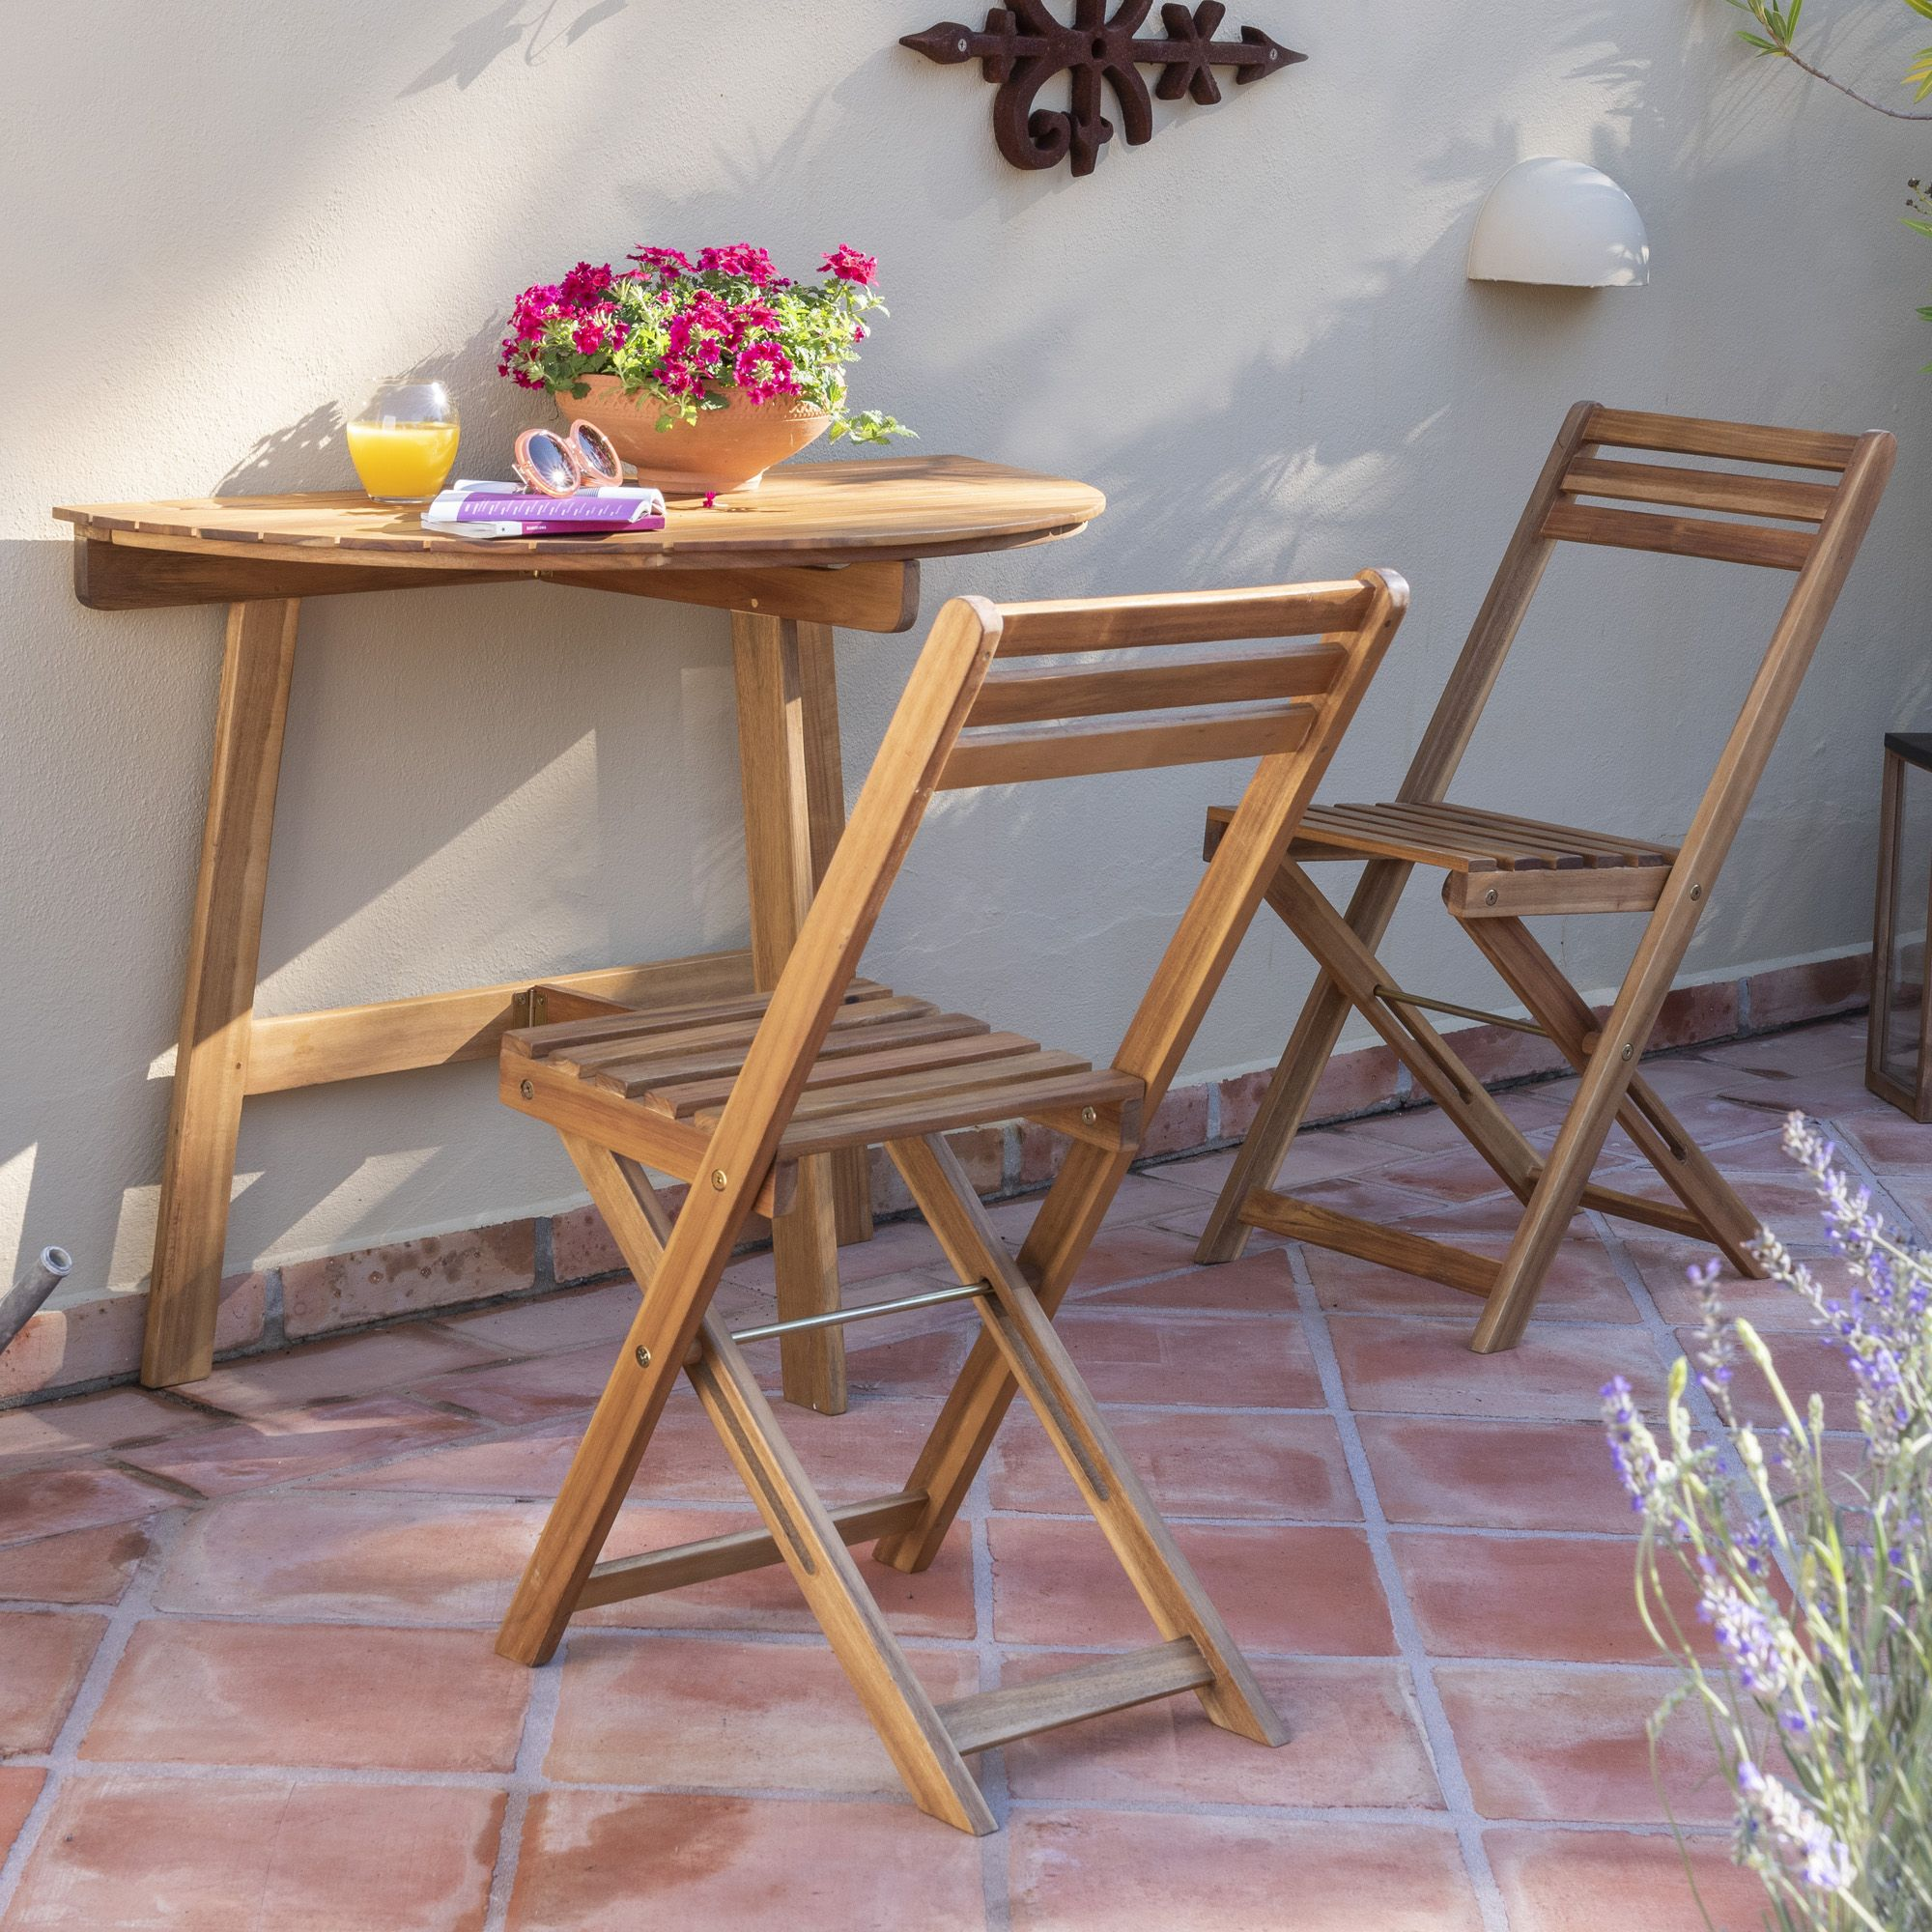 Wooden balcony half table and chairs